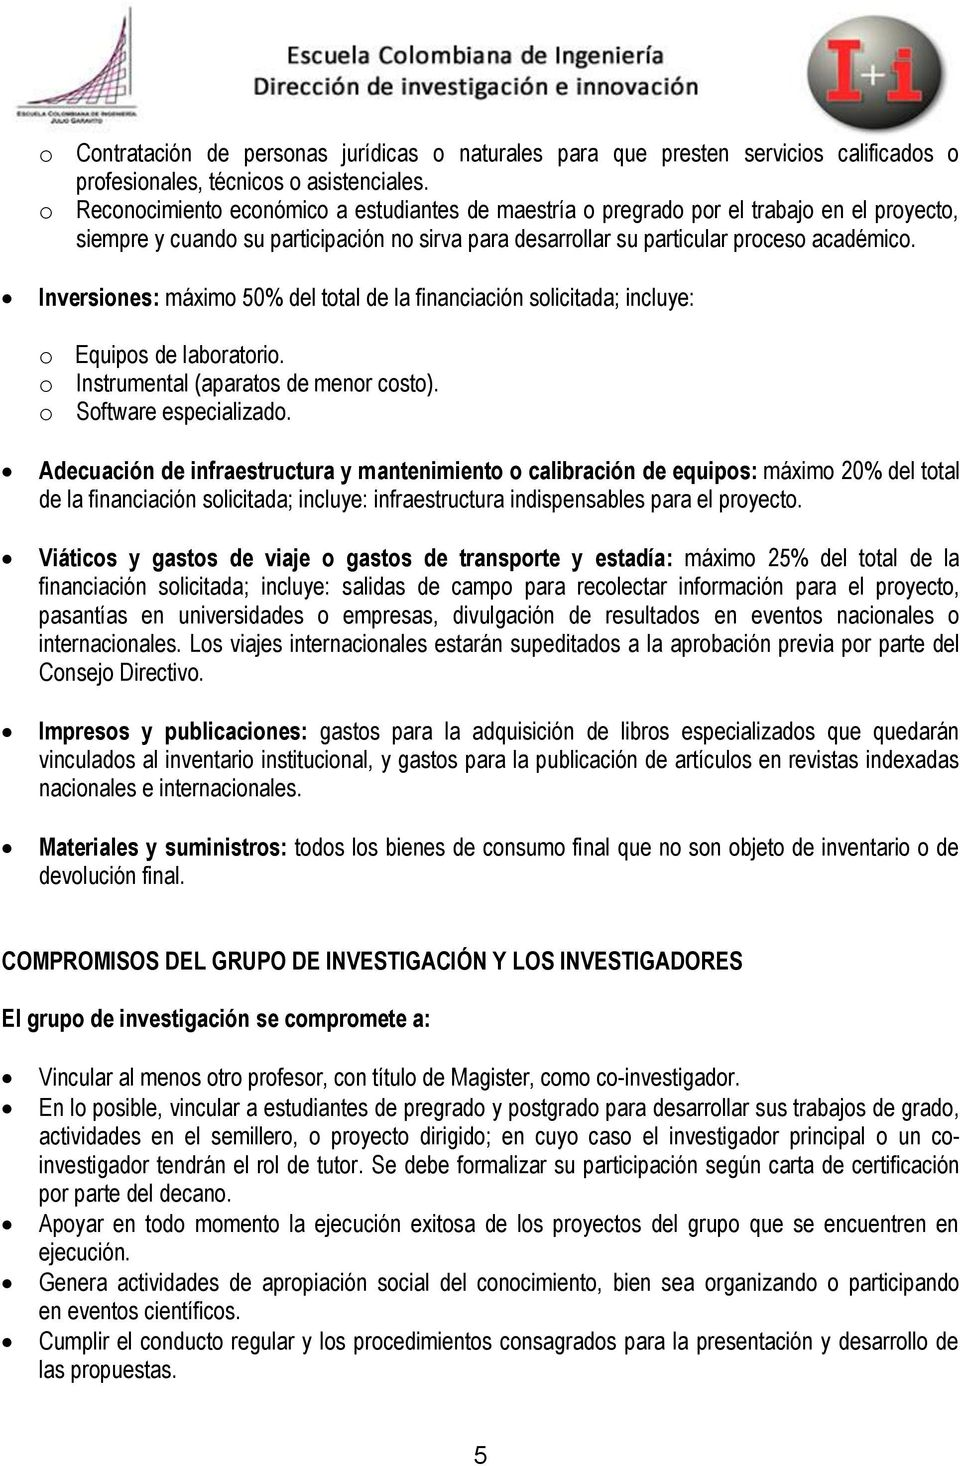 Inversiones: máximo 50% del total de la financiación solicitada; incluye: o Equipos de laboratorio. o Instrumental (aparatos de menor costo). o Software especializado.